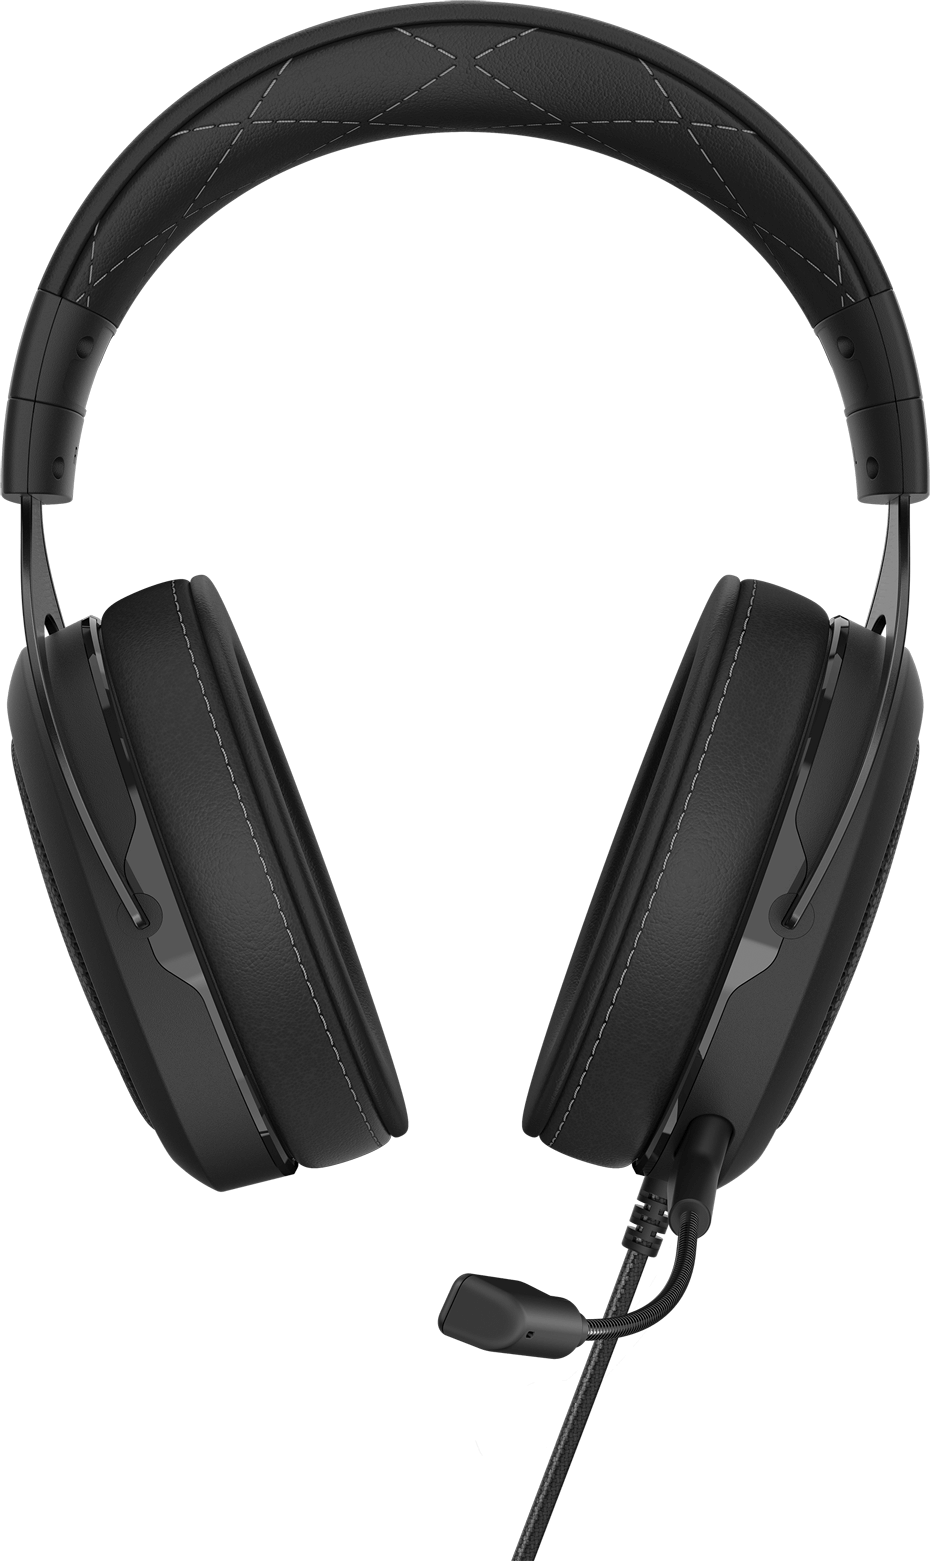 HS60 PRO GAMING HEADSET - CRAFTED FOR COMFORT